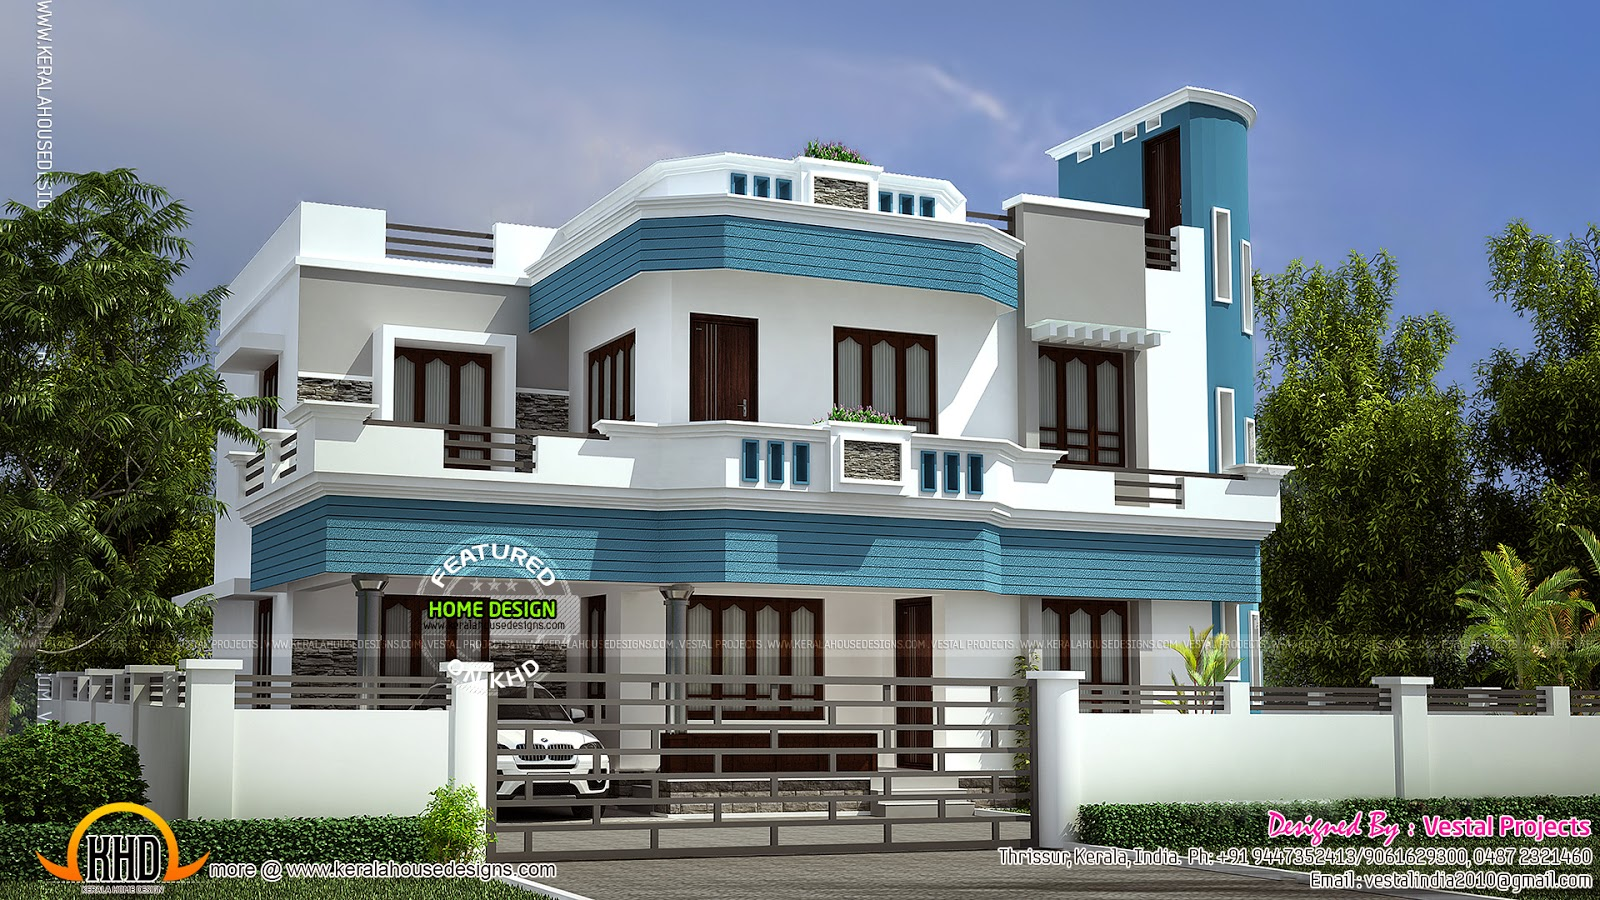 Awesome house by vestal projects kerala home design and for Awesome home design ideas